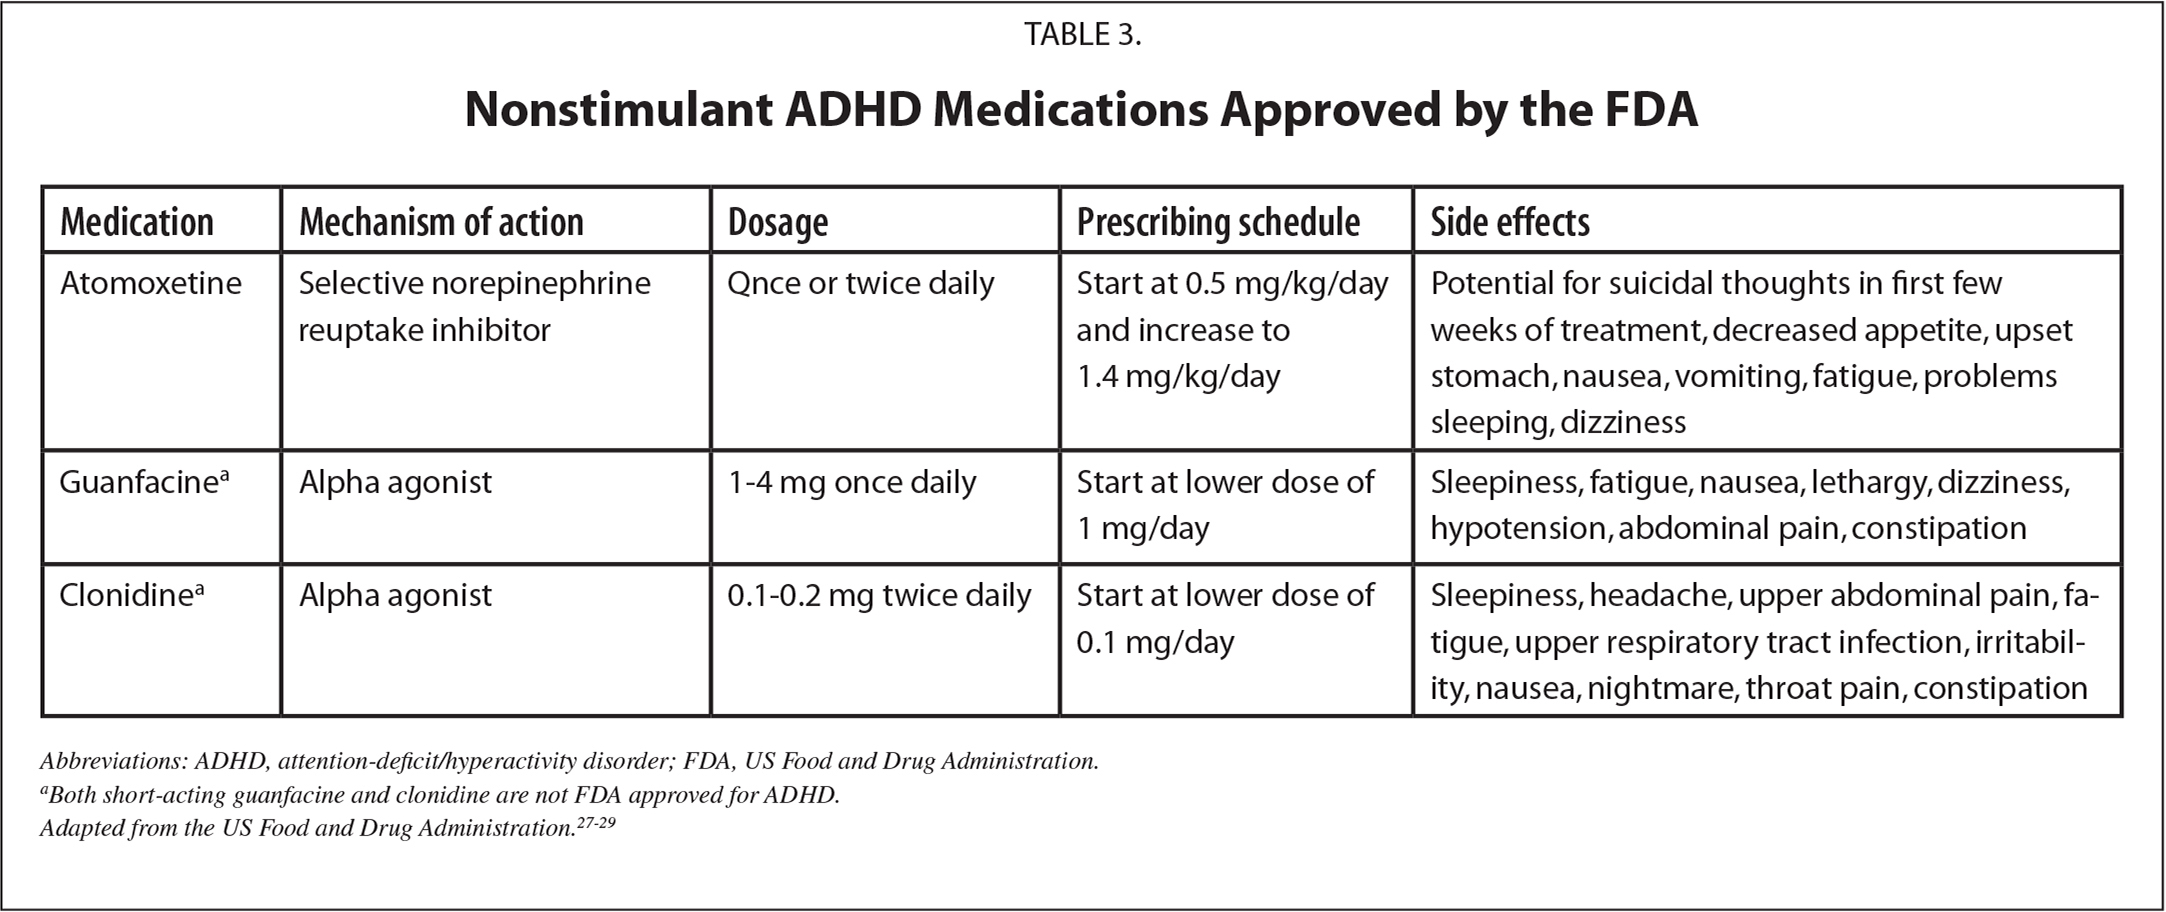 Nonstimulant ADHD Medications Approved by the FDA